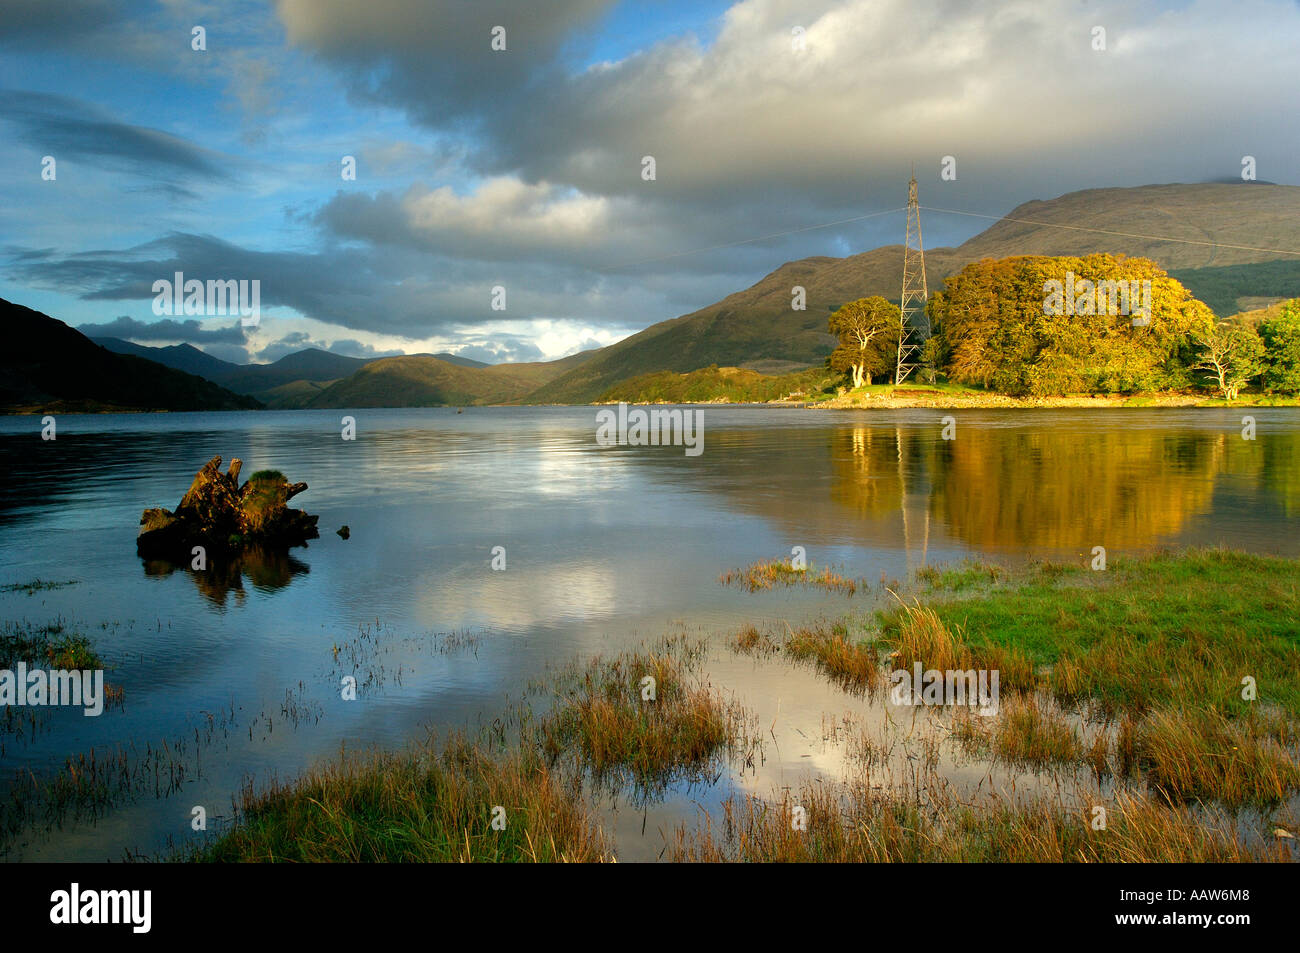 Late evening view of southern end of Loch Etive near Bonawe